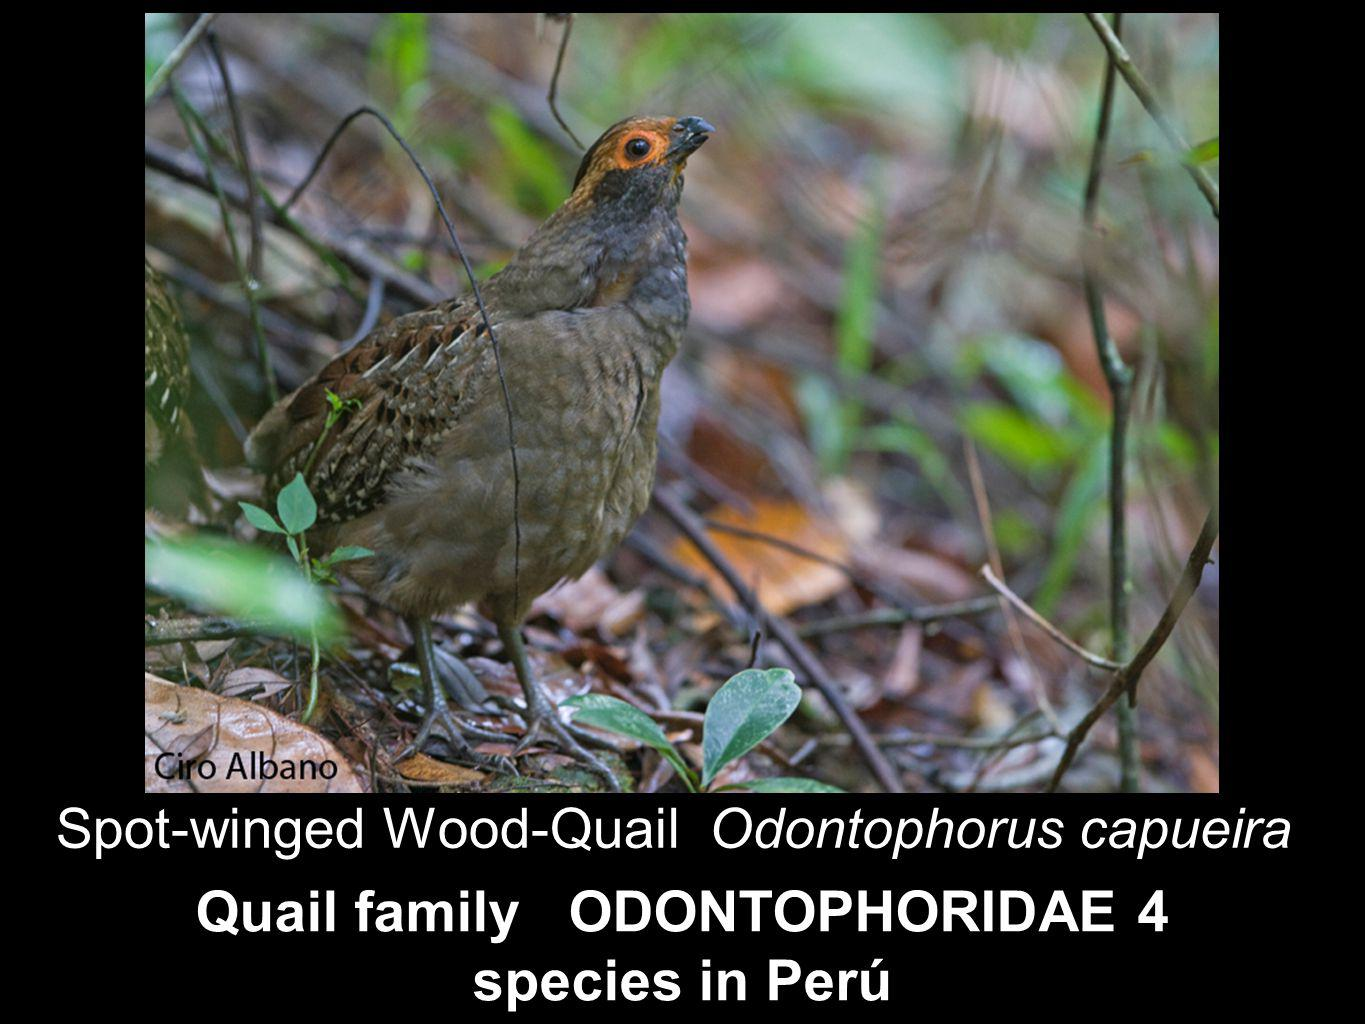 Quail family ODONTOPHORIDAE 4 species in Perú Spot-winged Wood-Quail Odontophorus capueira